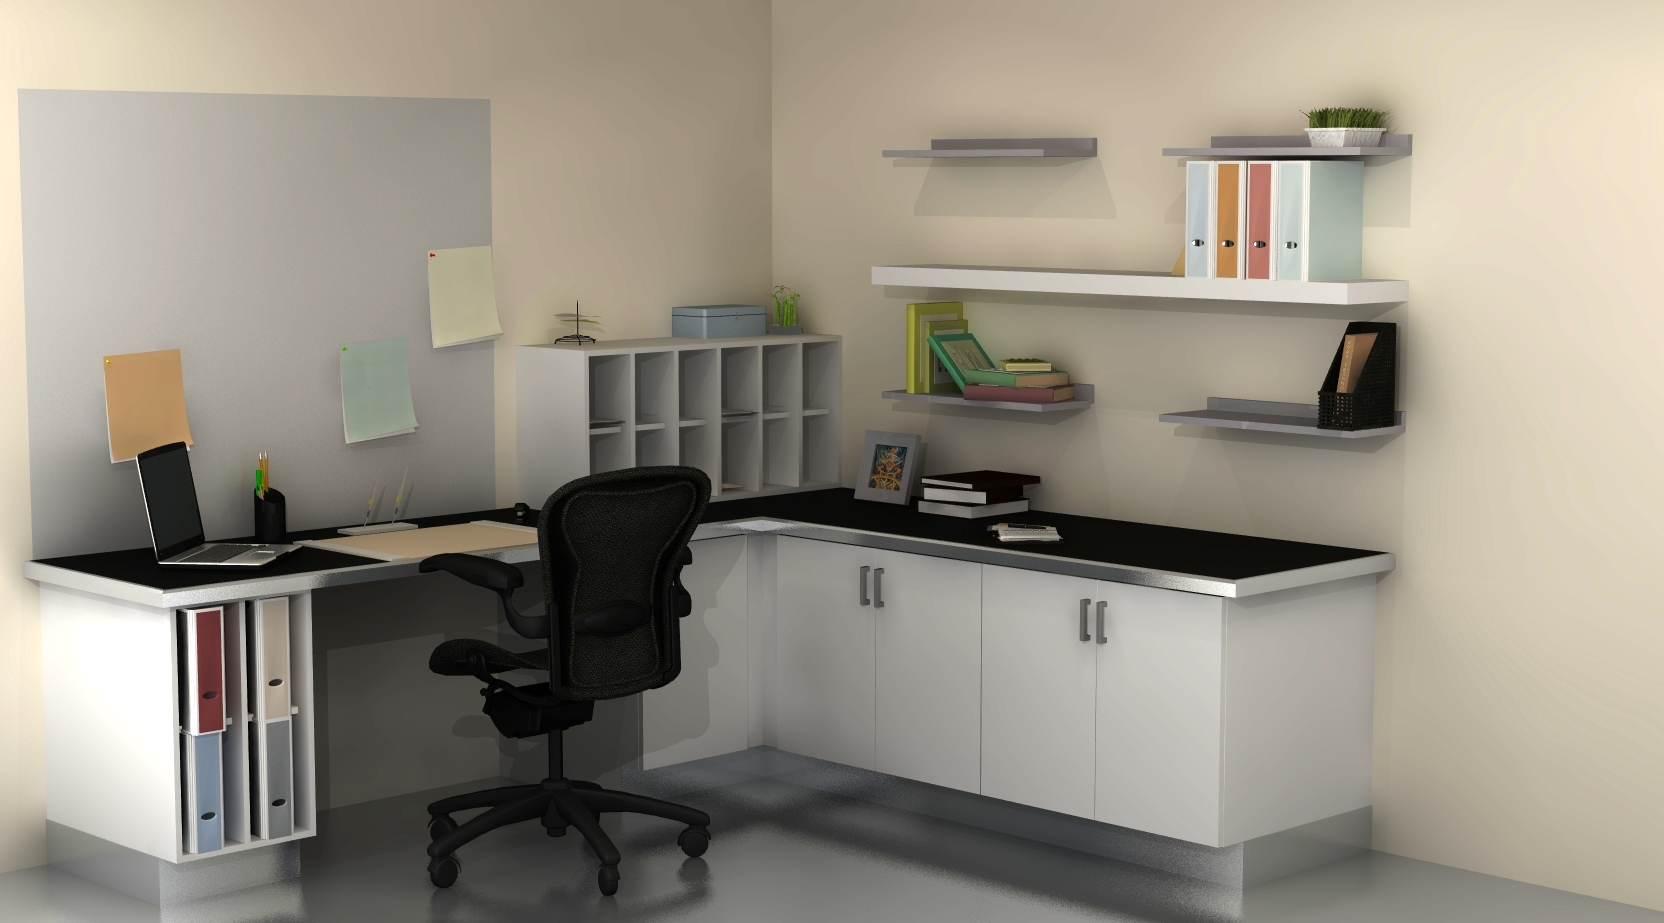 ikea modular office furniture systems trend home design